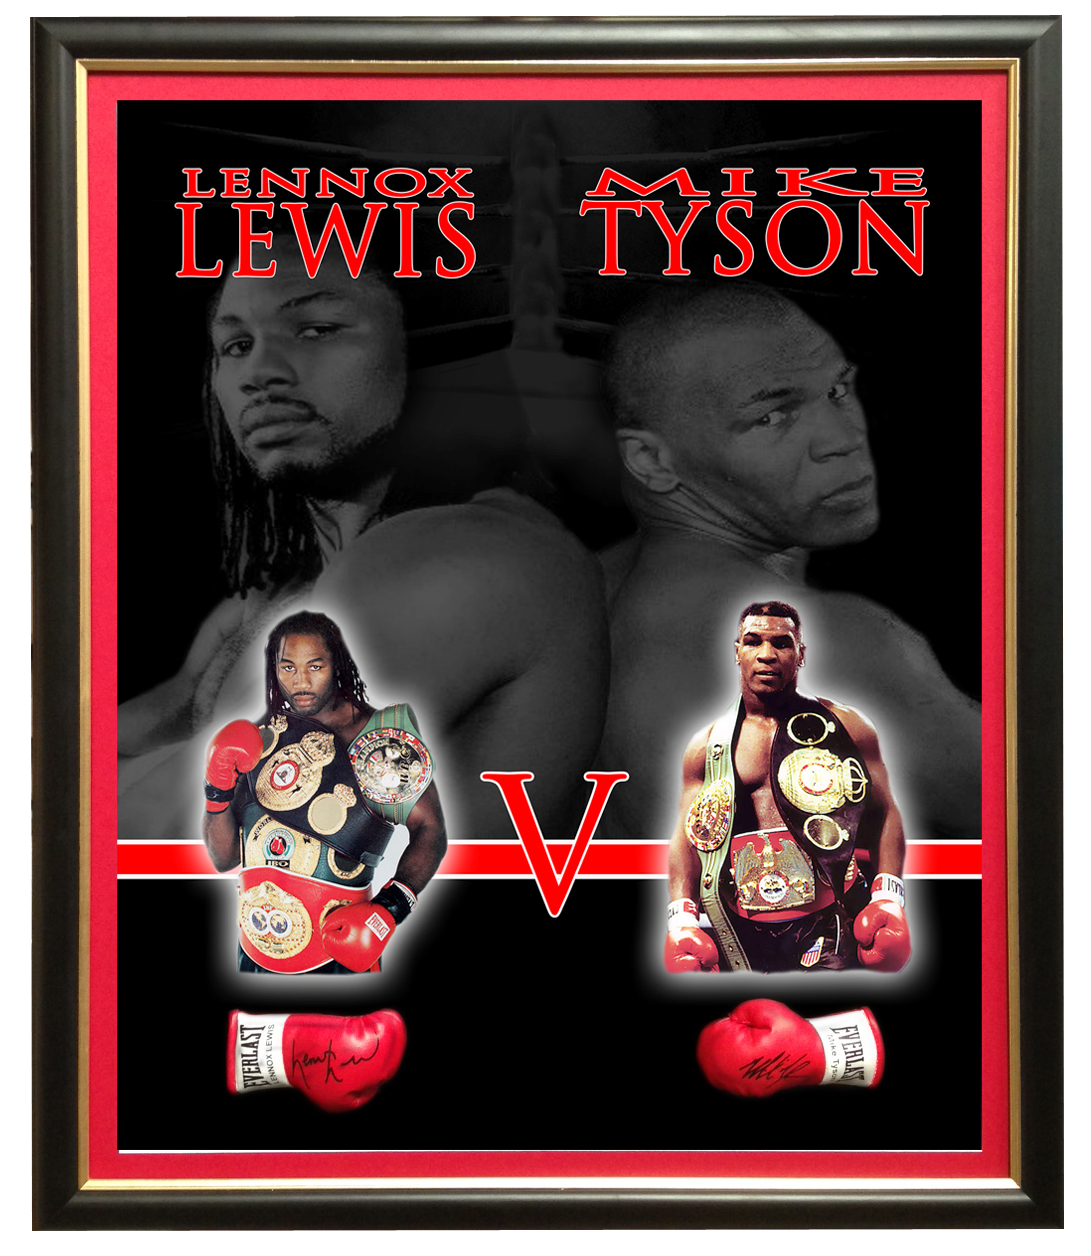 Rivalry Series - 'Lennox Lewis vs Mike Tyson' Mini Glove Display, Framed with Facsimile Signatures